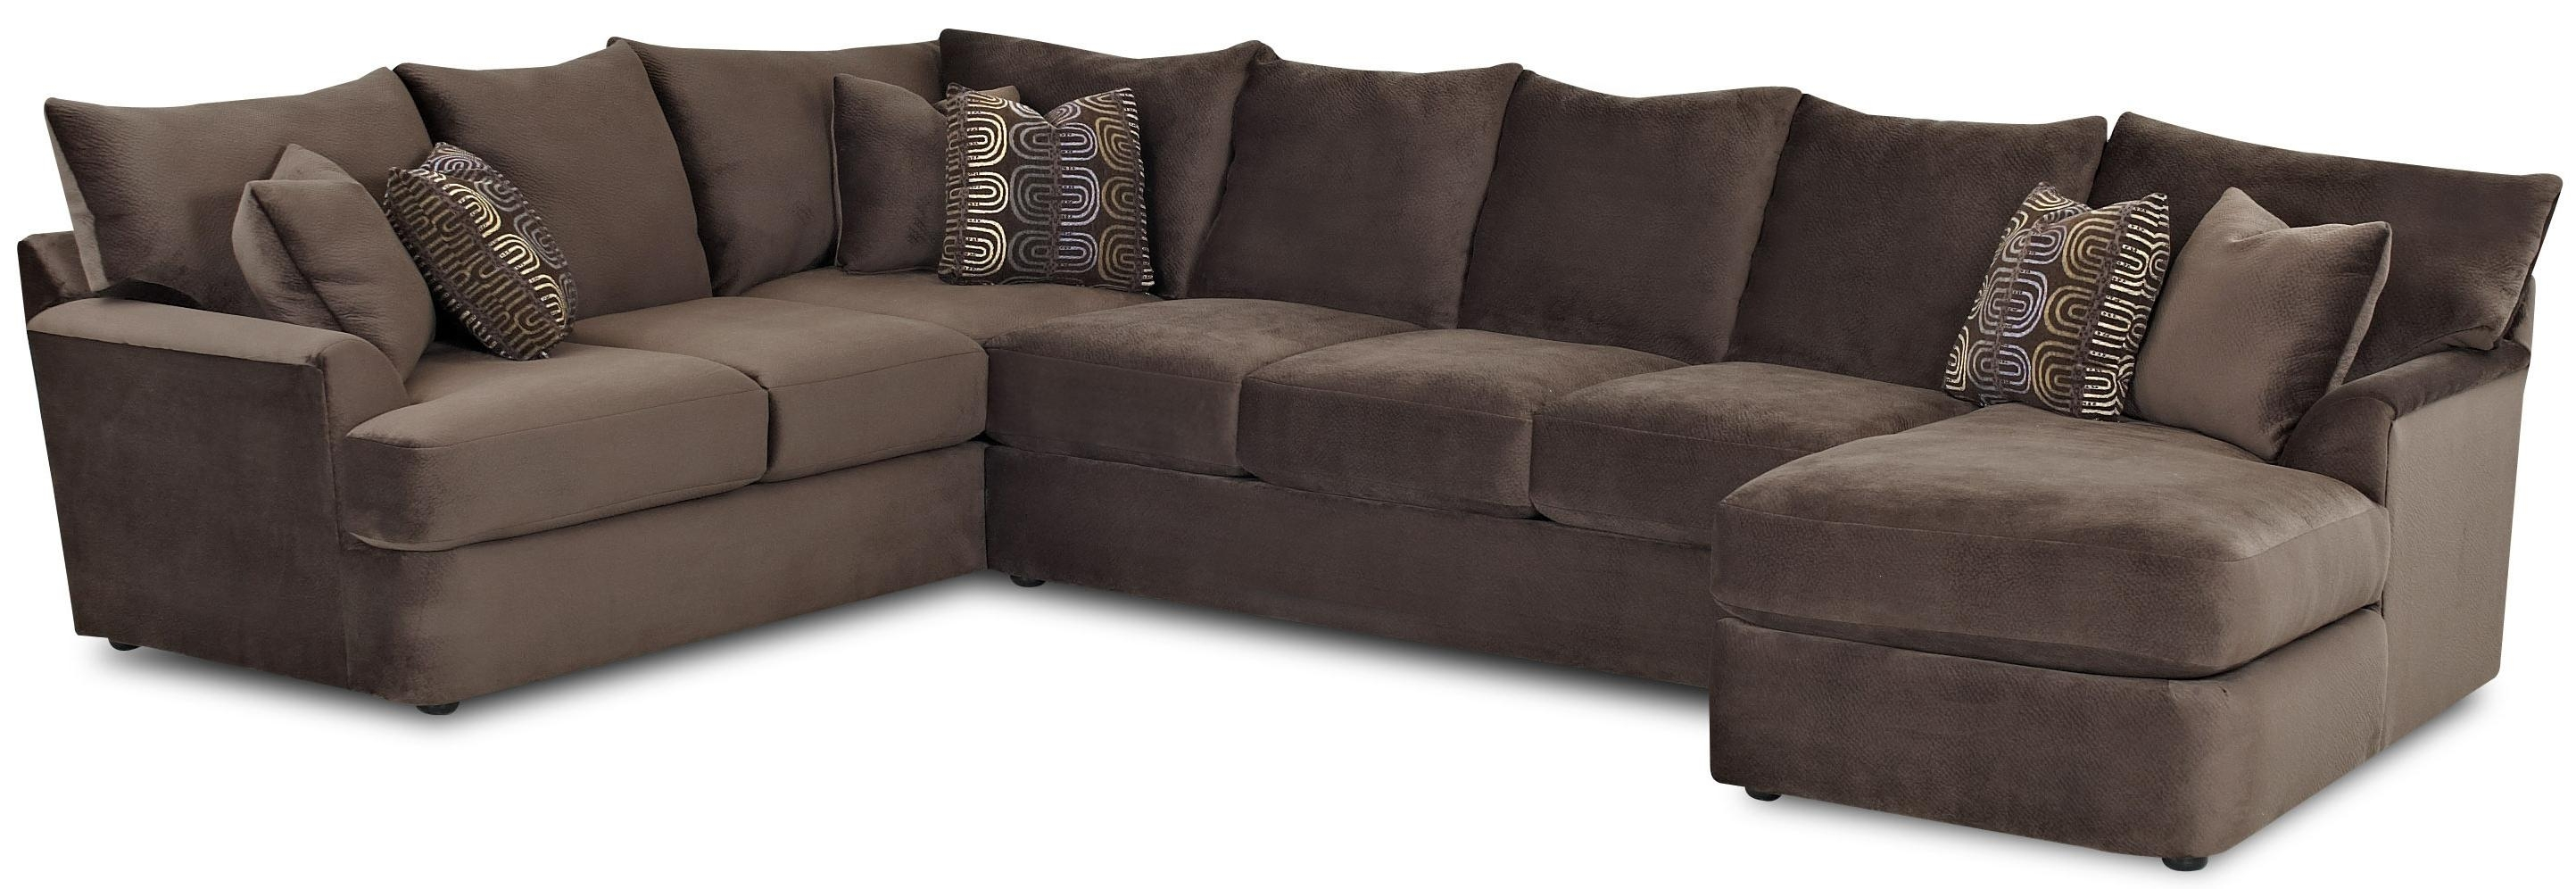 Sectional Sofa Design: Elegant L Shaped Sectional Sofa Corner L Throughout L Shaped Sectional Sofas (View 6 of 10)